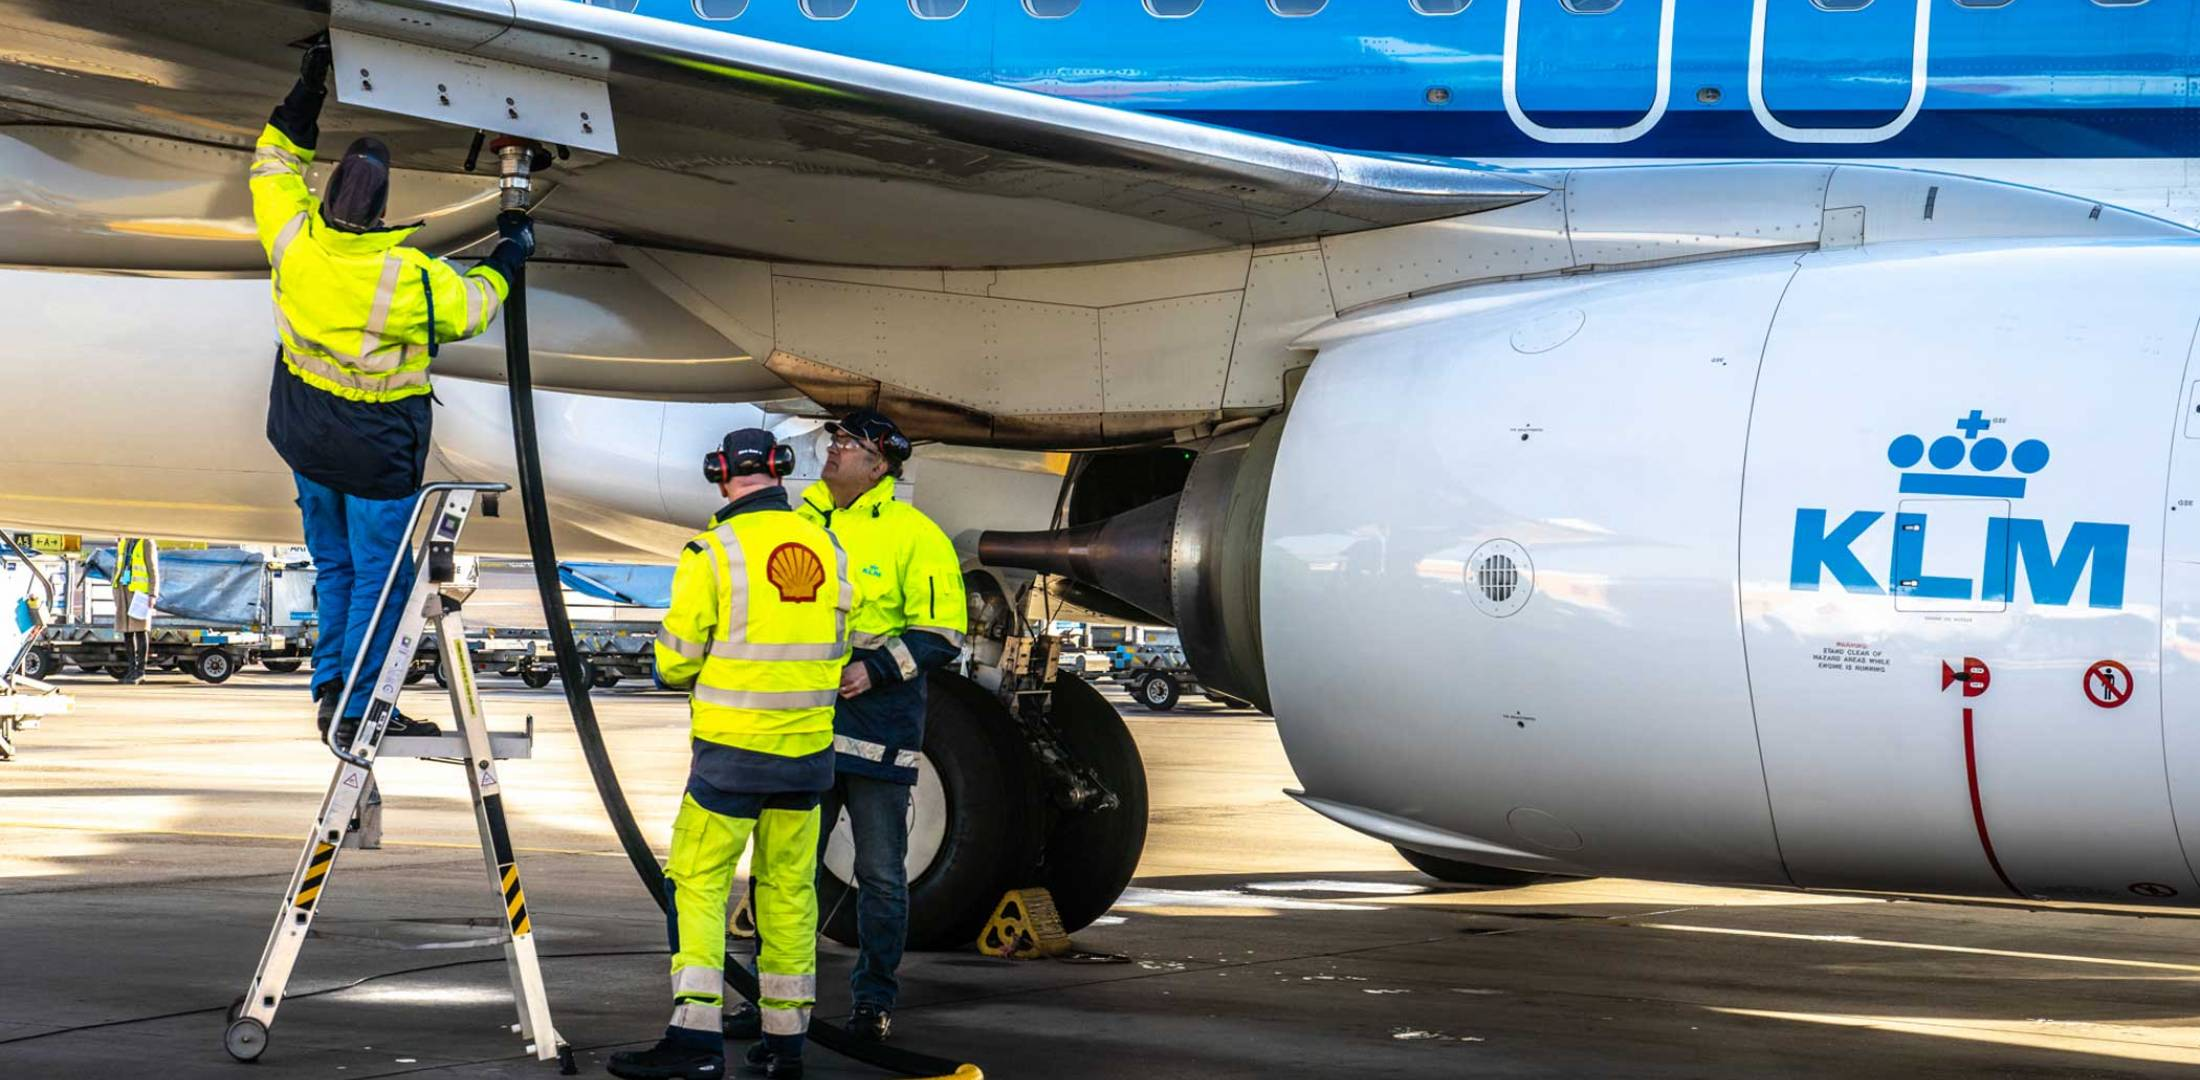 KLM flew its first passenger flight with sustainable synthetic kerosene in January.